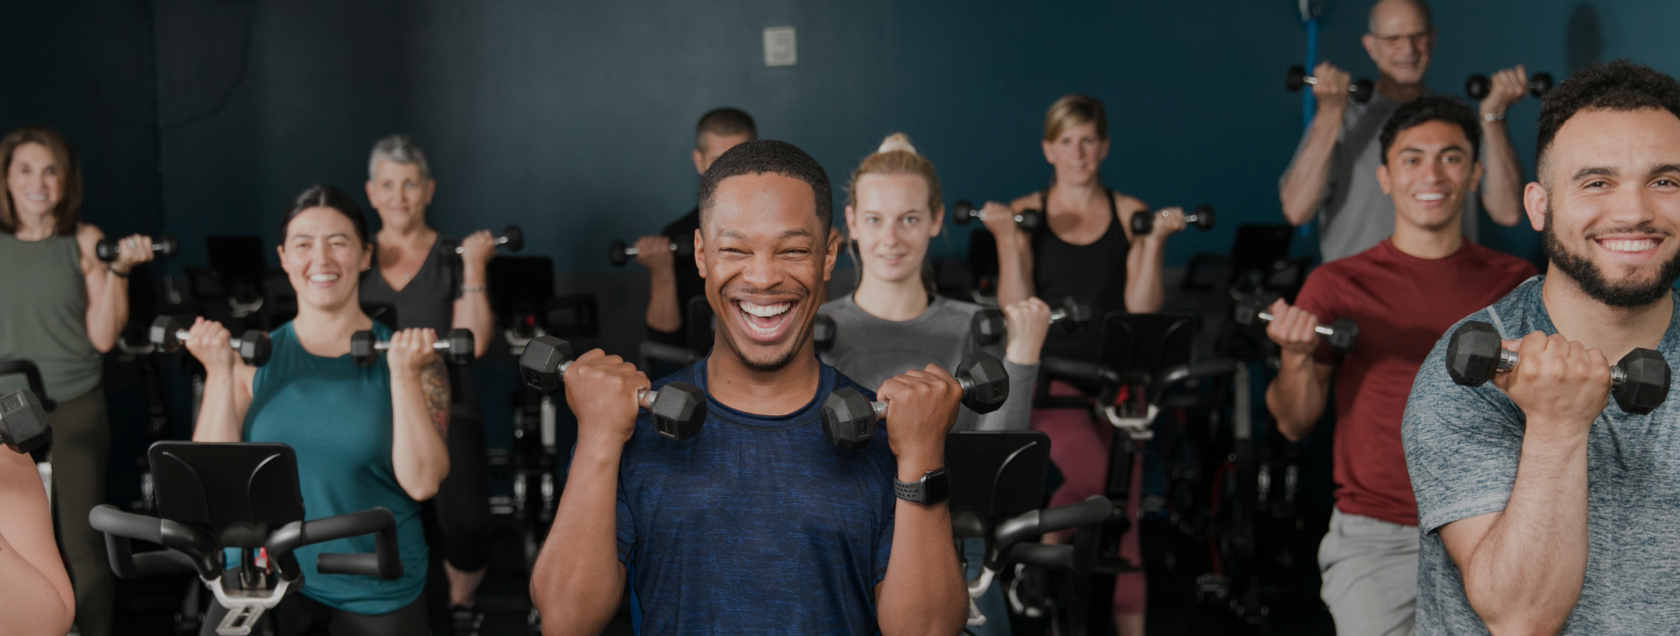 group fitness class using dumbbells